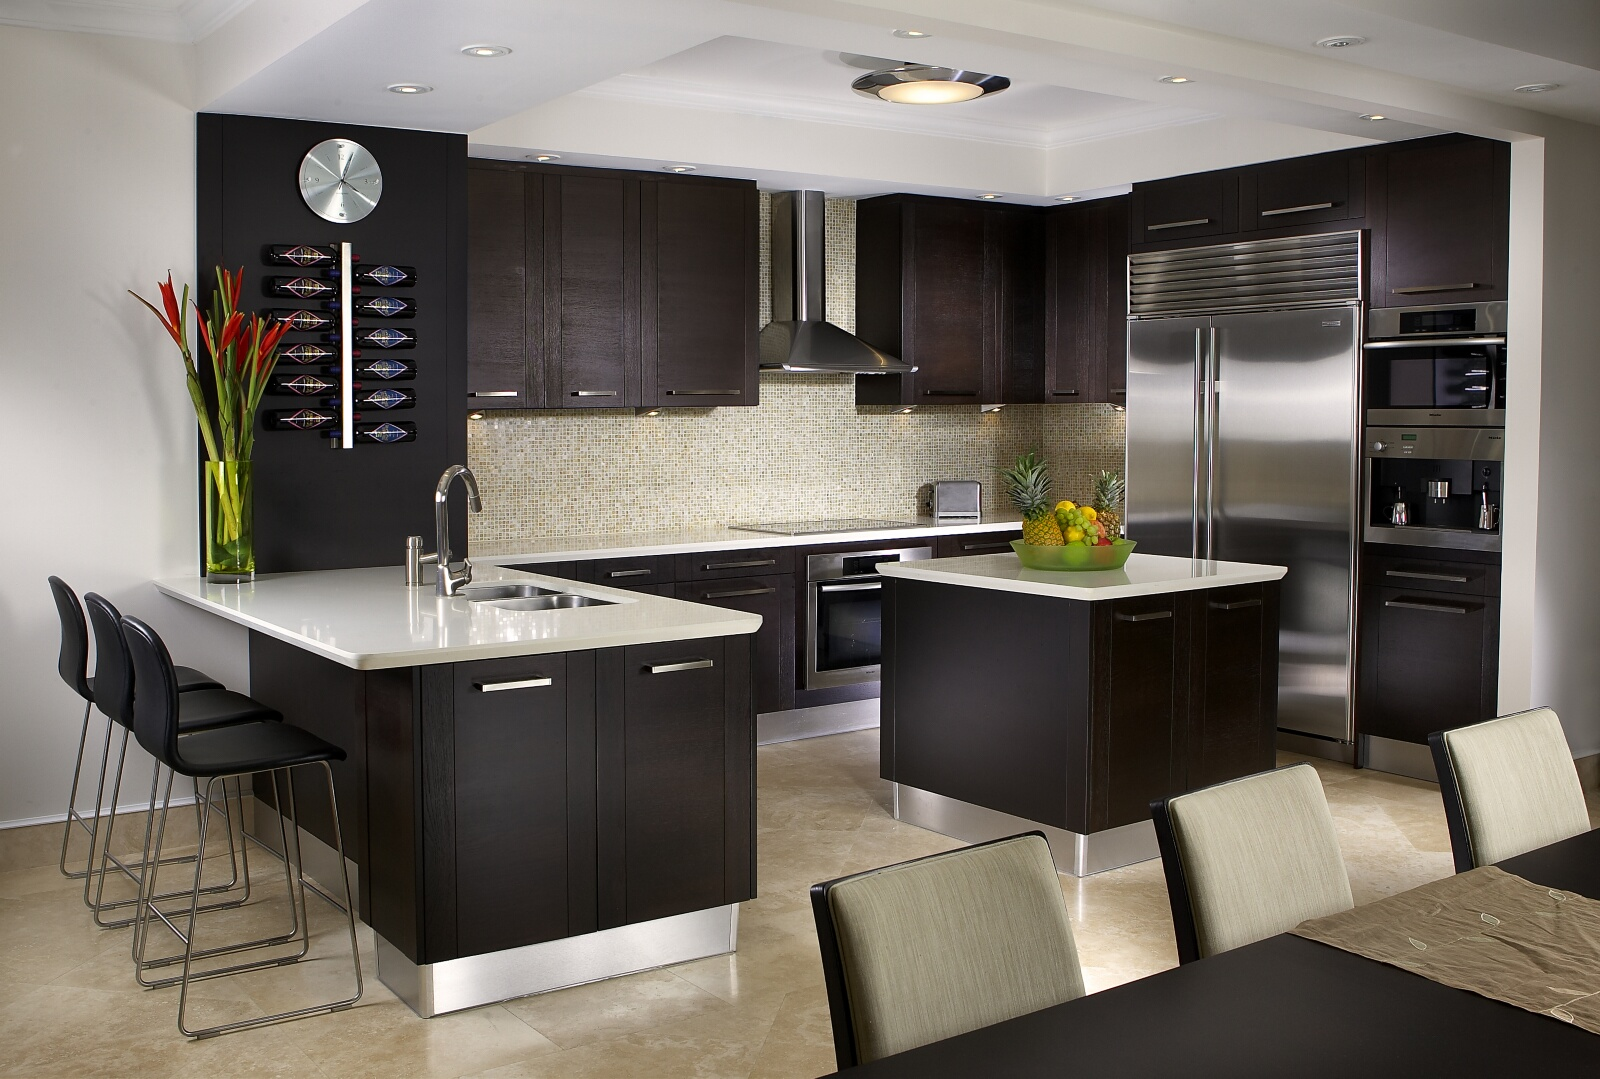 Kitchen interior design services miami florida for Kitchen interior design images